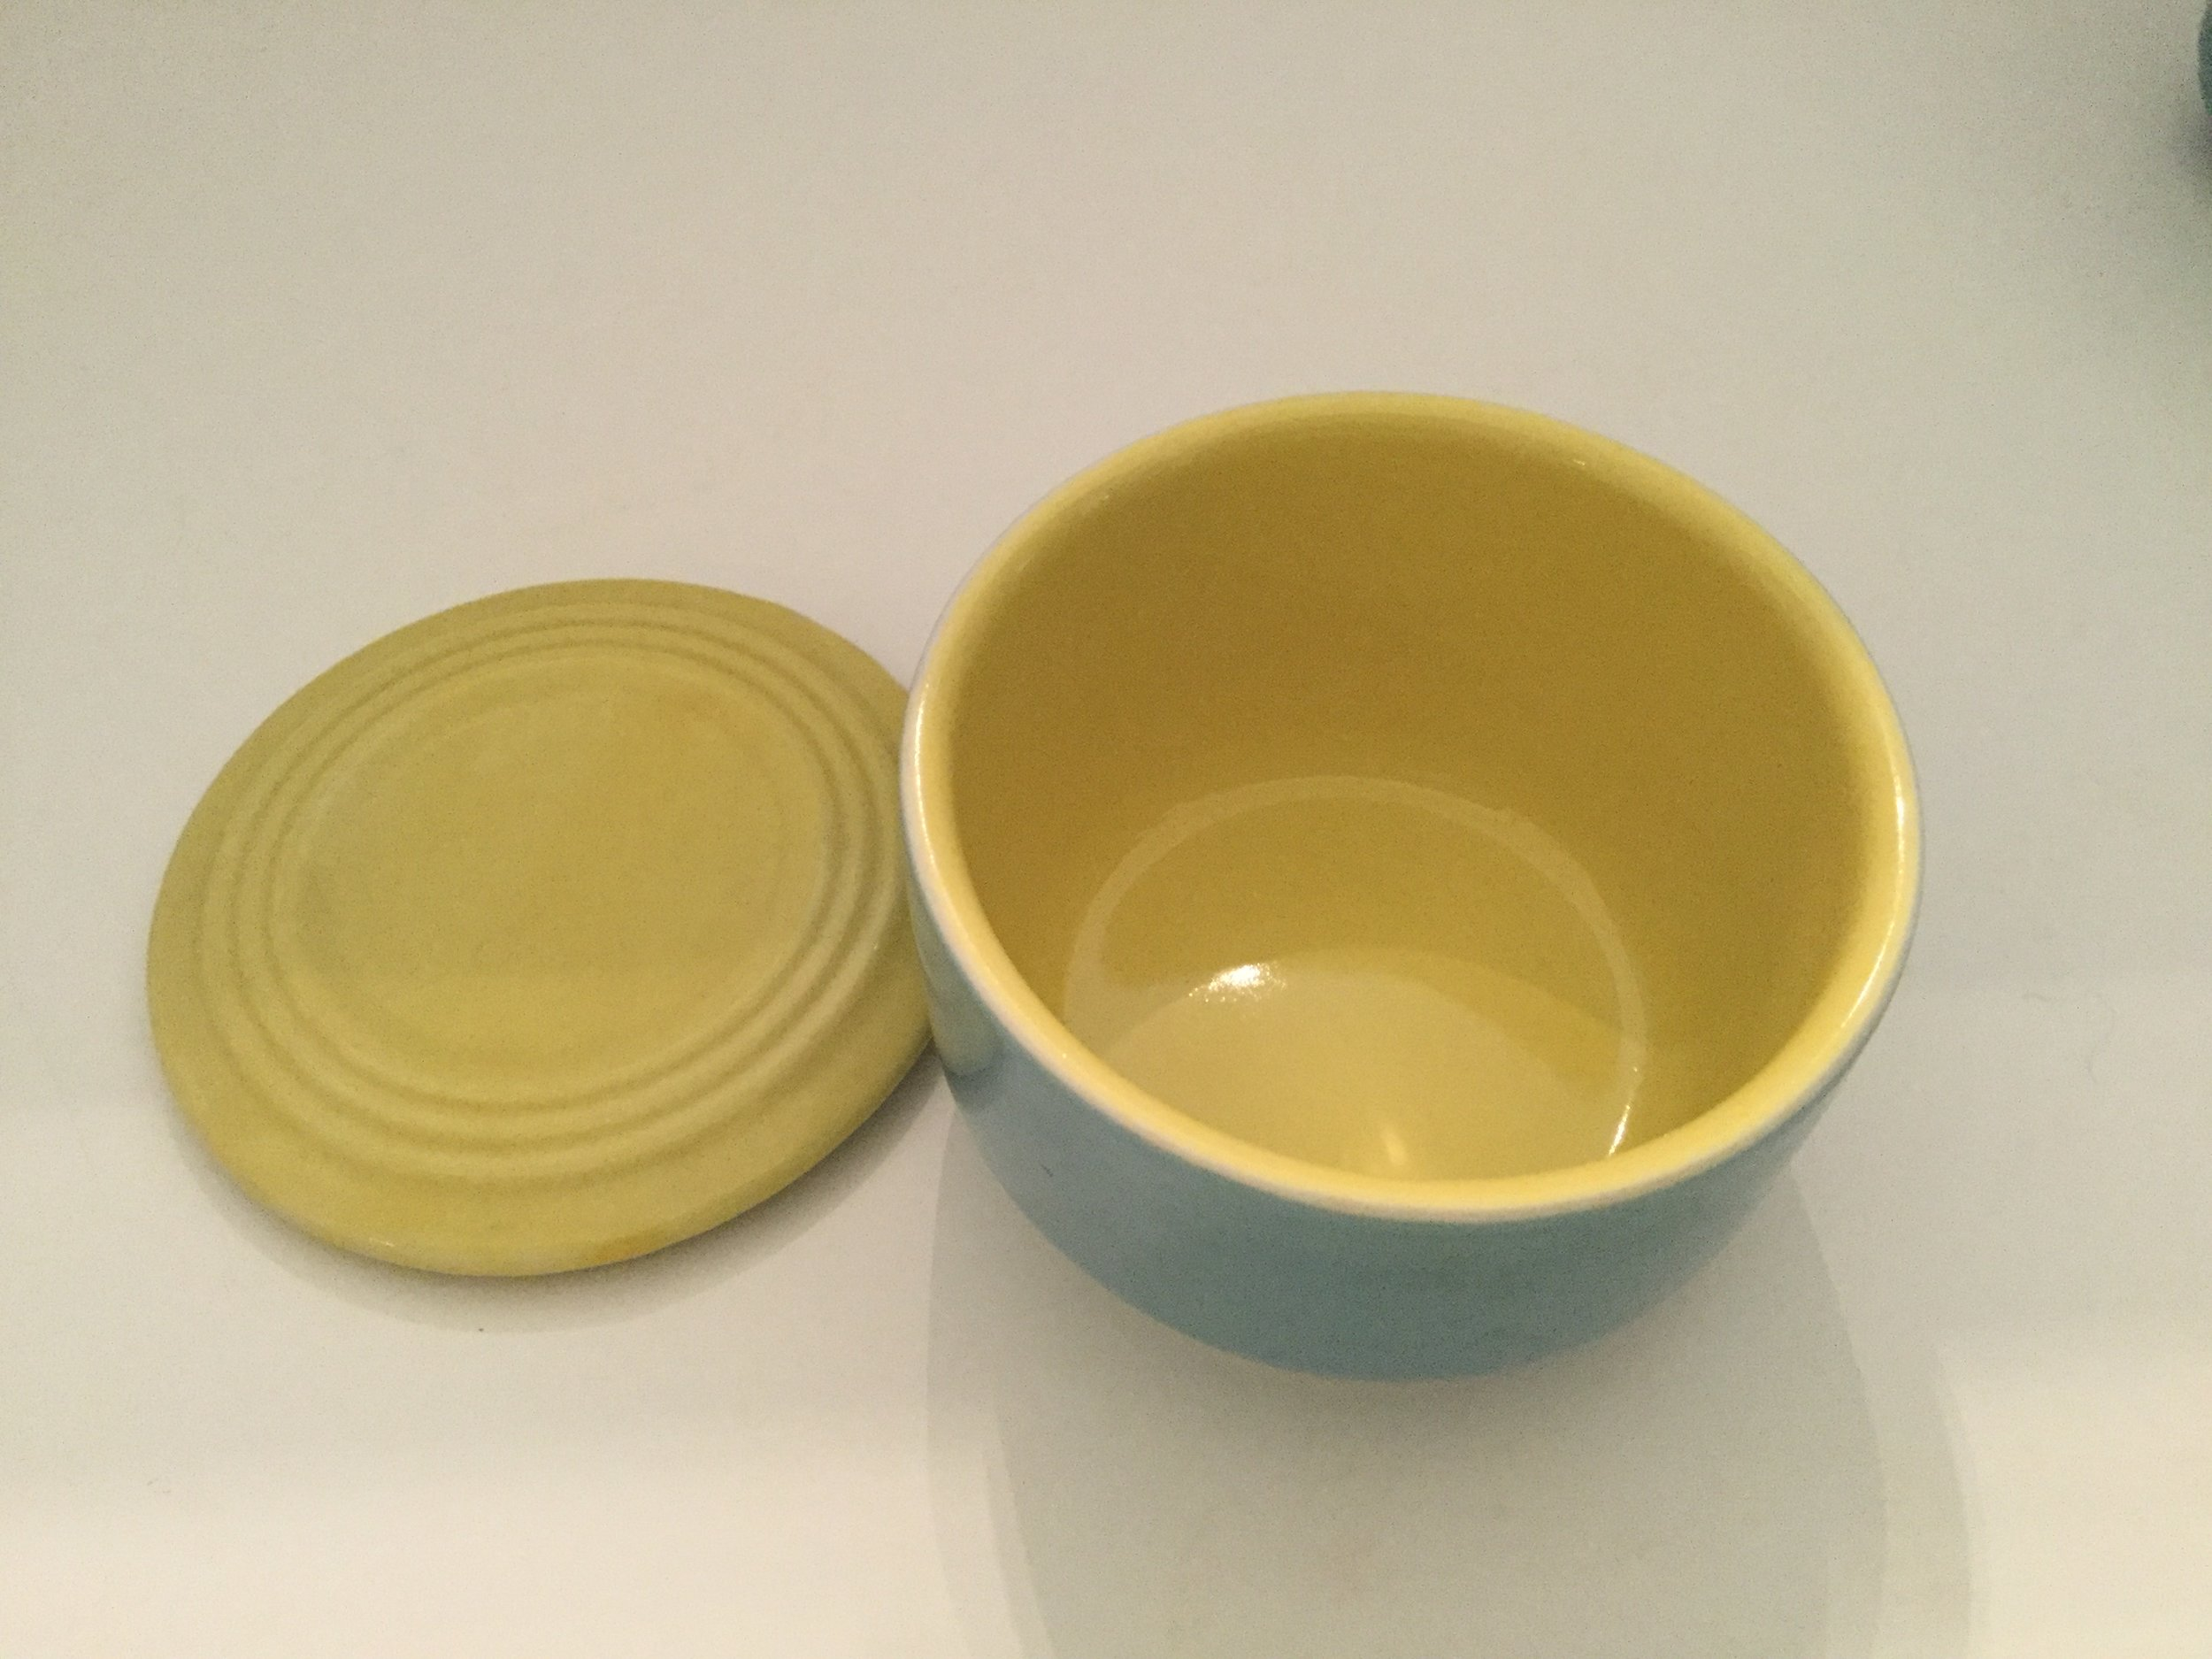 The refrigerator dishes have yellow interiors